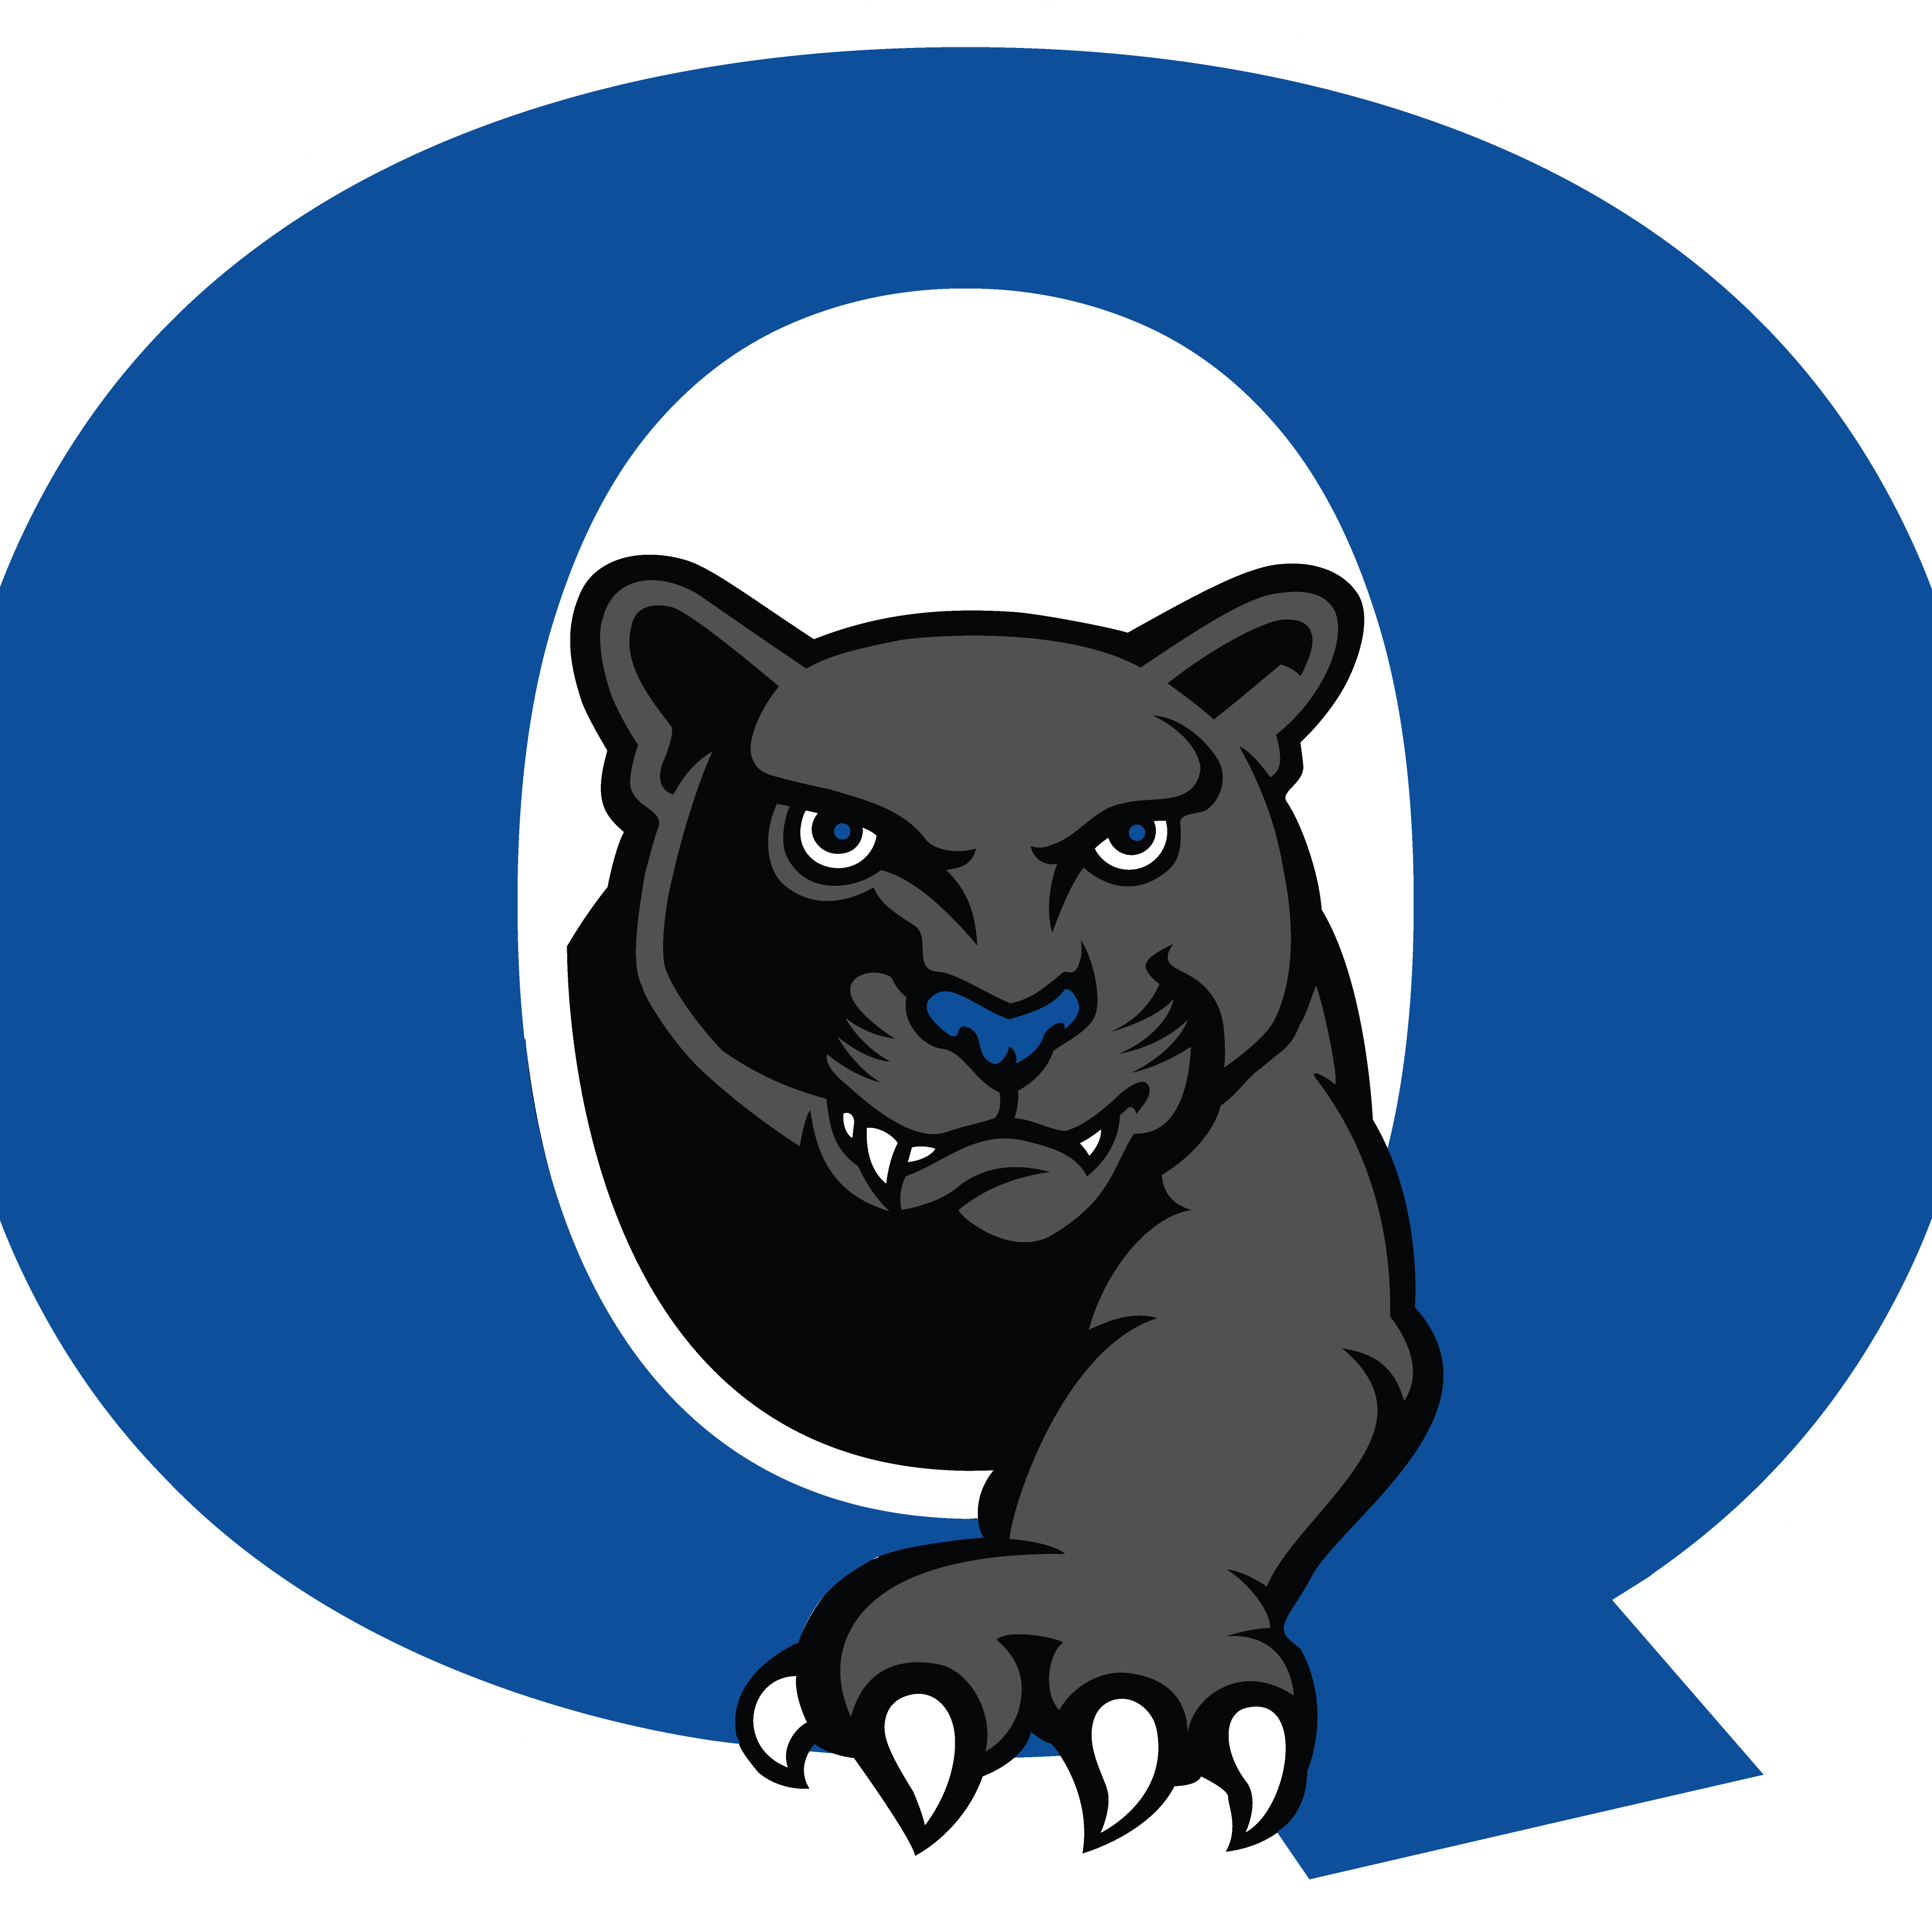 Yearbook clipart panther. Quakertown comm hs on